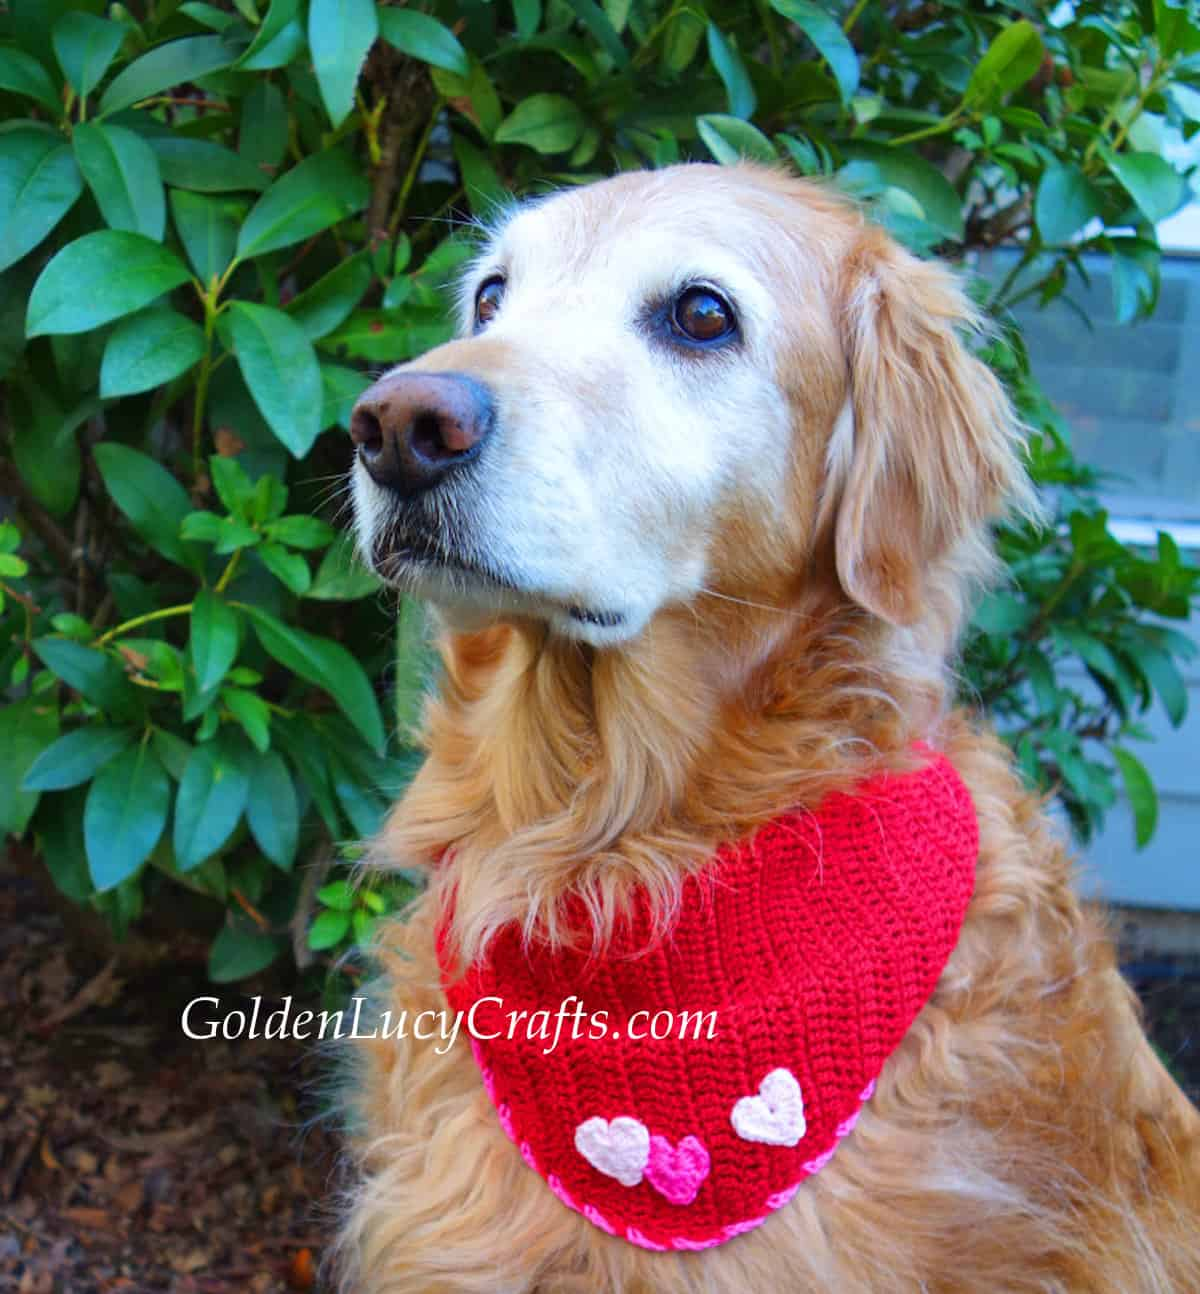 Dog dressed in red bandana embellished with three hearts.